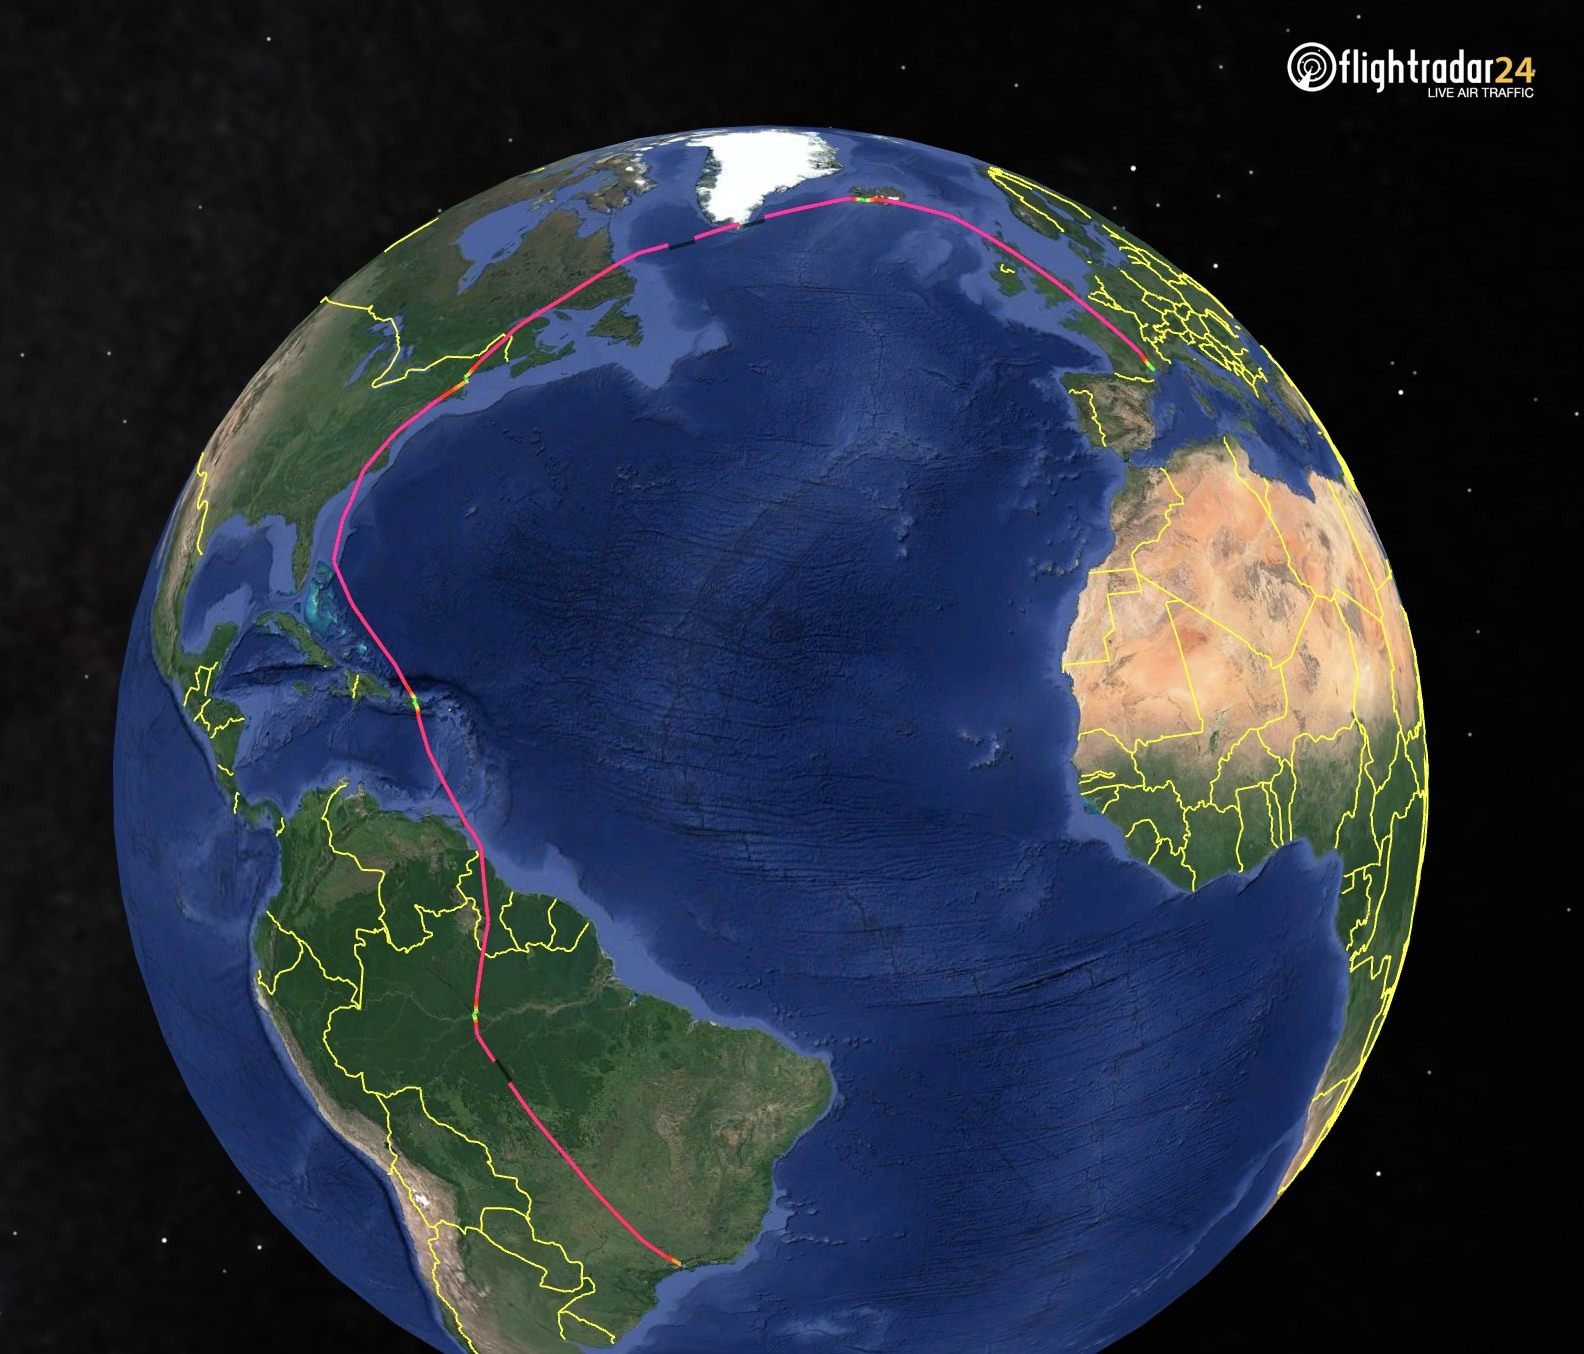 N135WF's flight path from Brazil to France